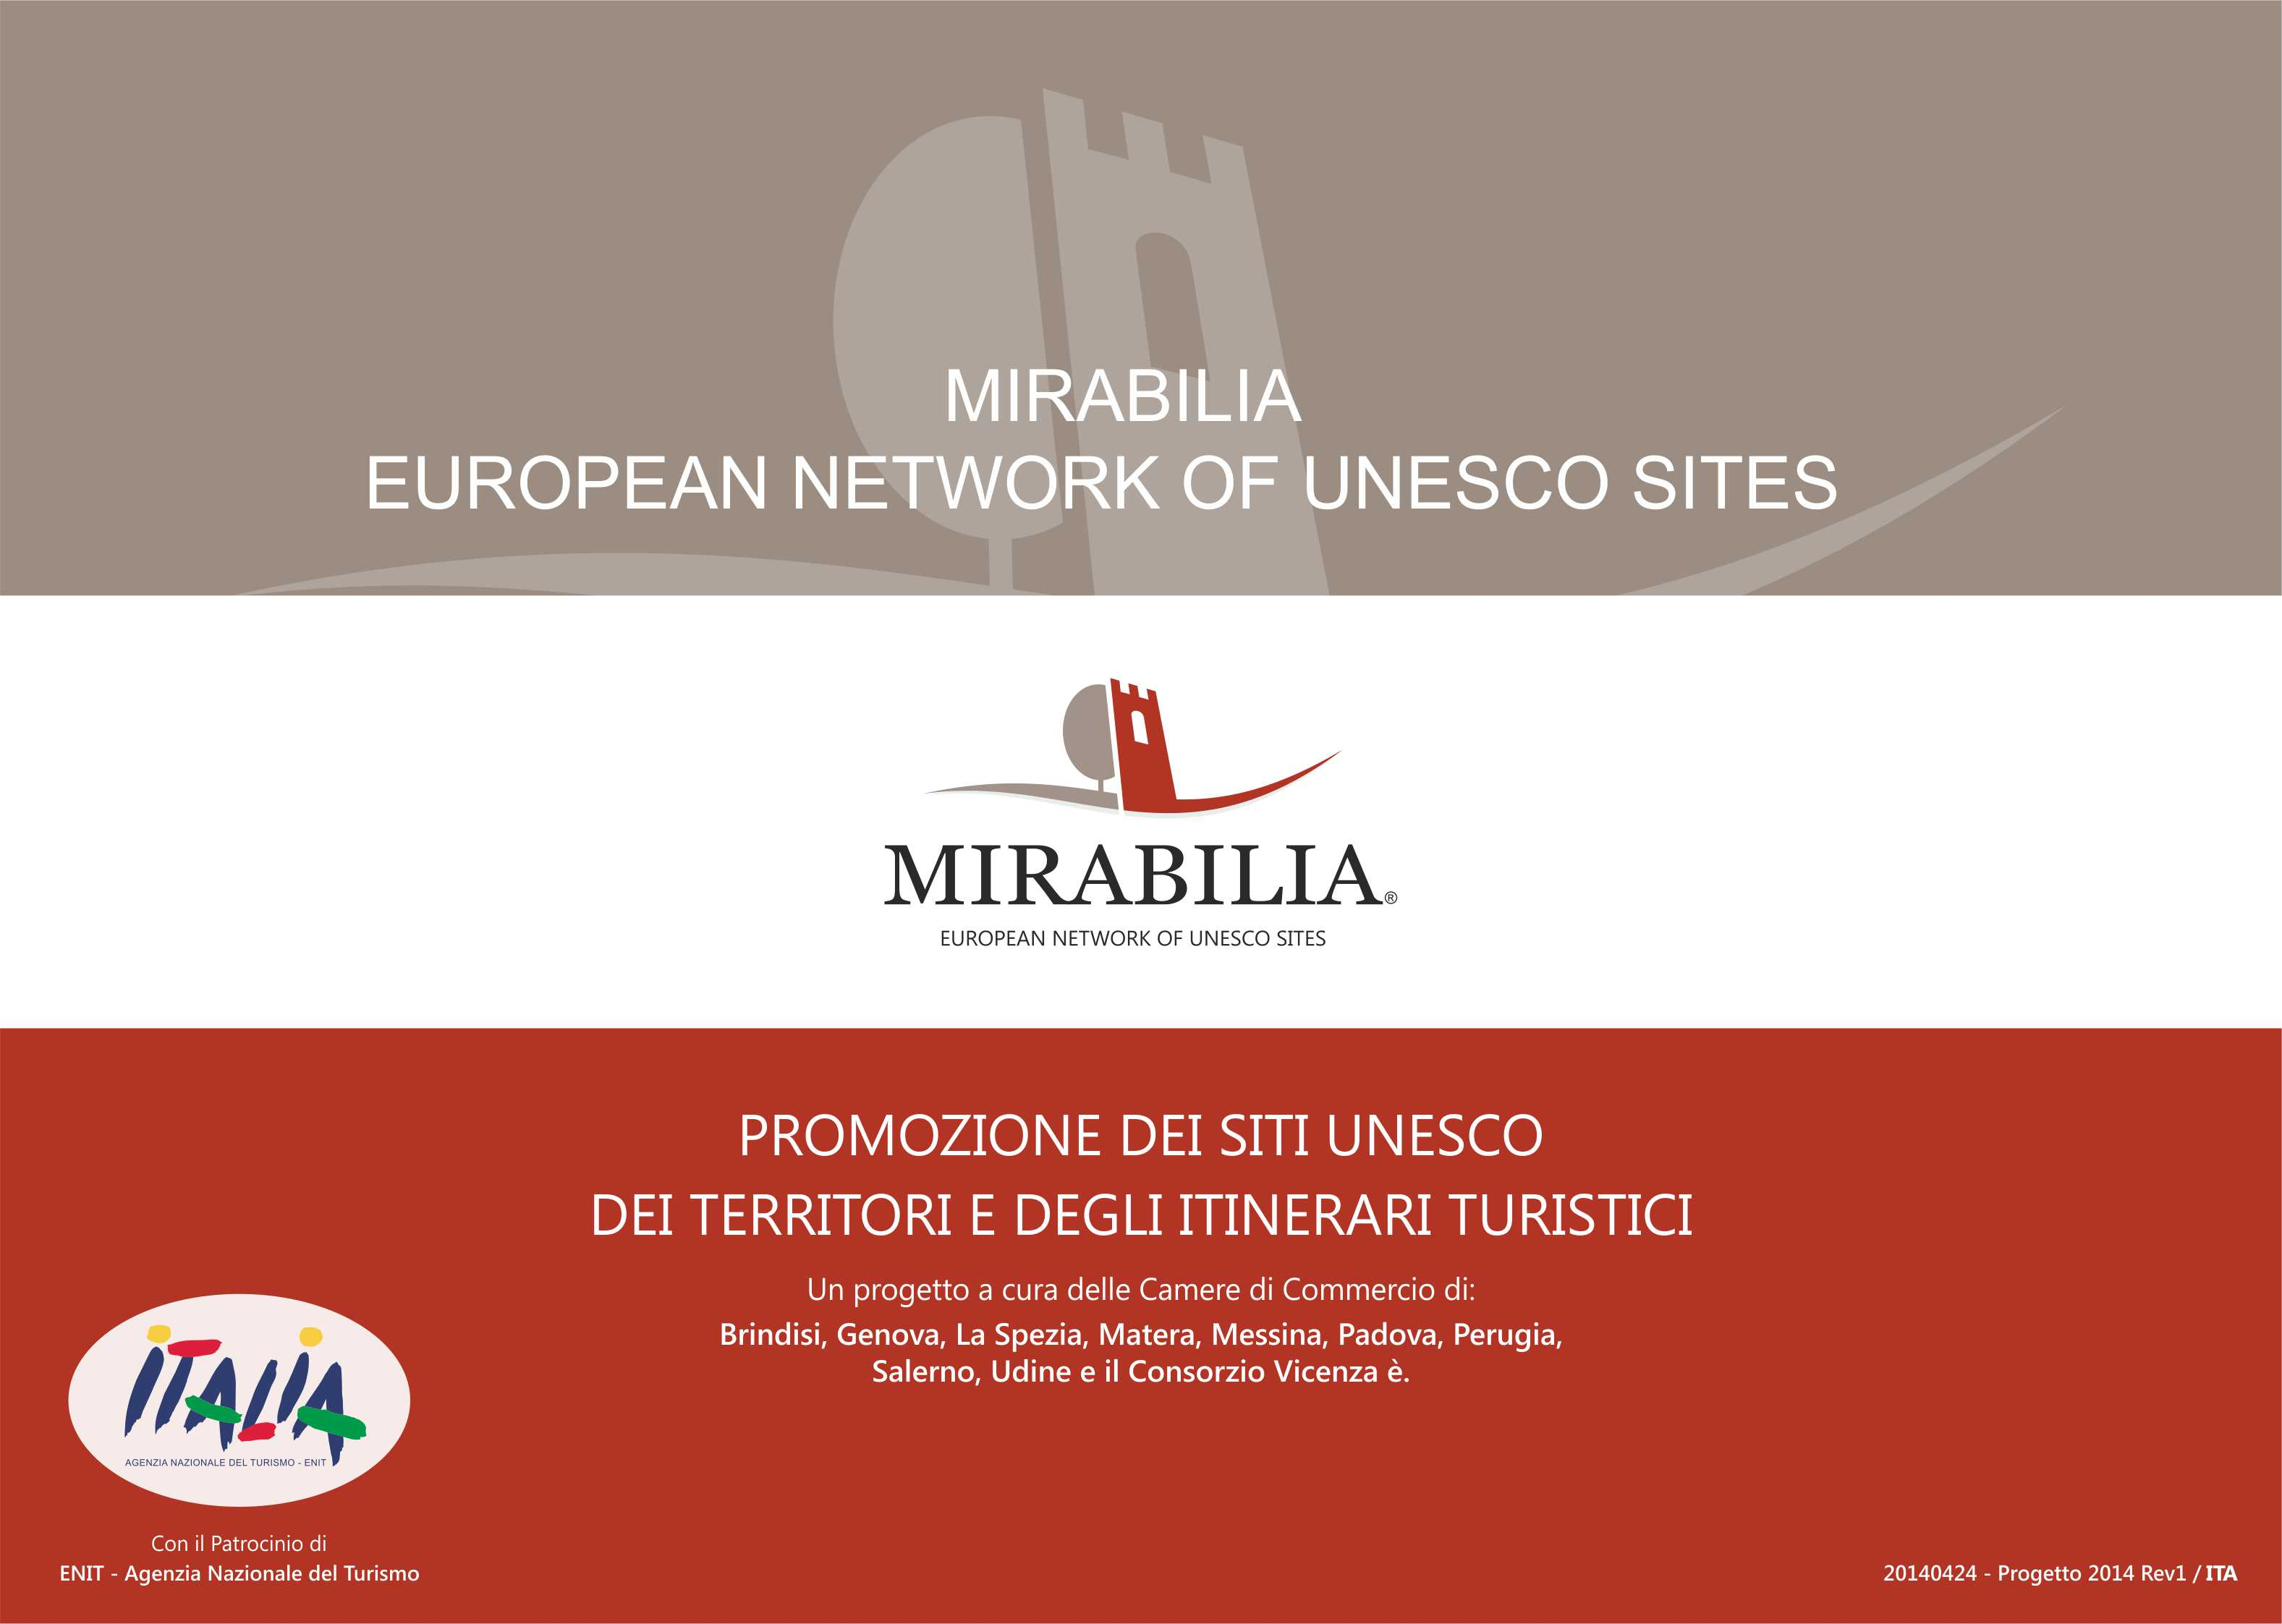 /uploaded/Foto Articoli/Mirabilia(1).jpg